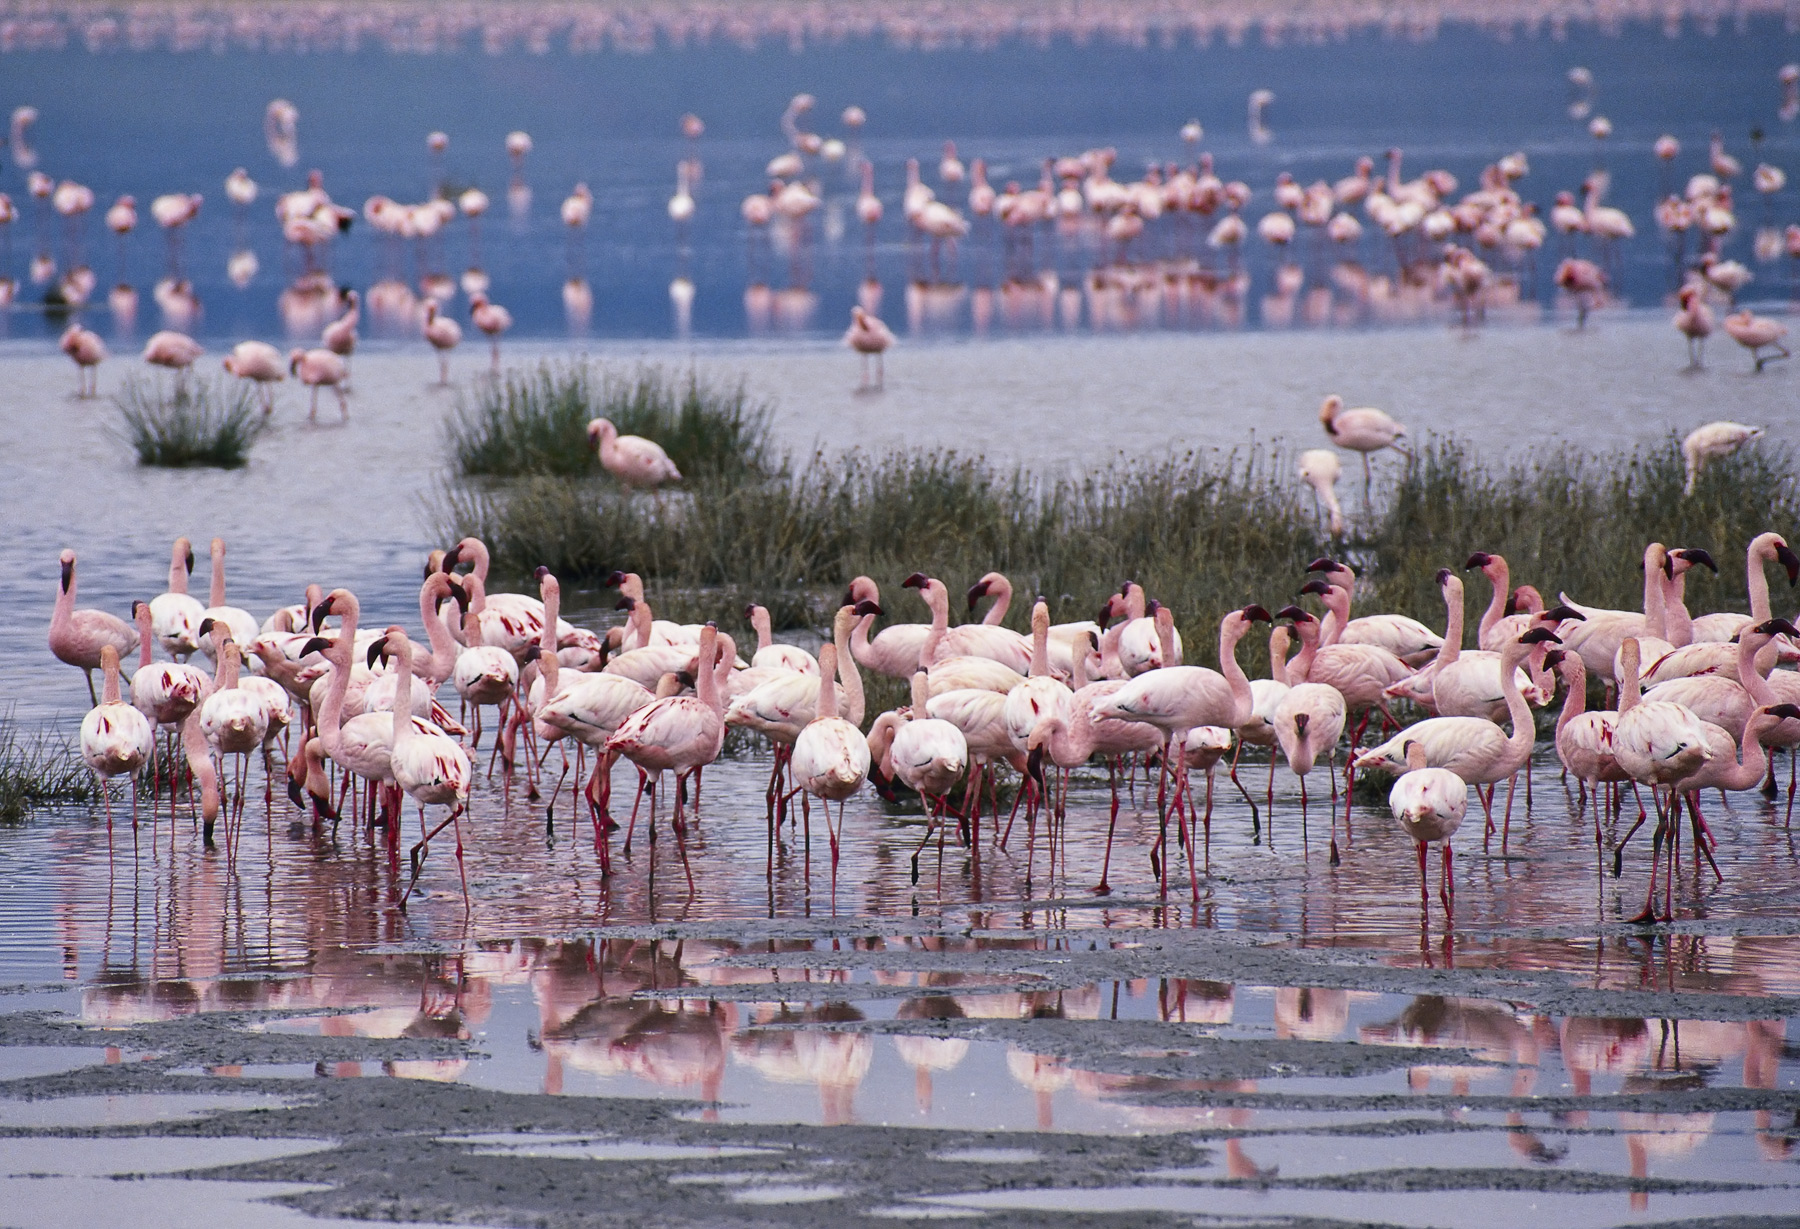 A wonderful pink flurry of flamingos sporting scarlet legs at lake Arusha outside of Nairobi. I loved seeing their partial...